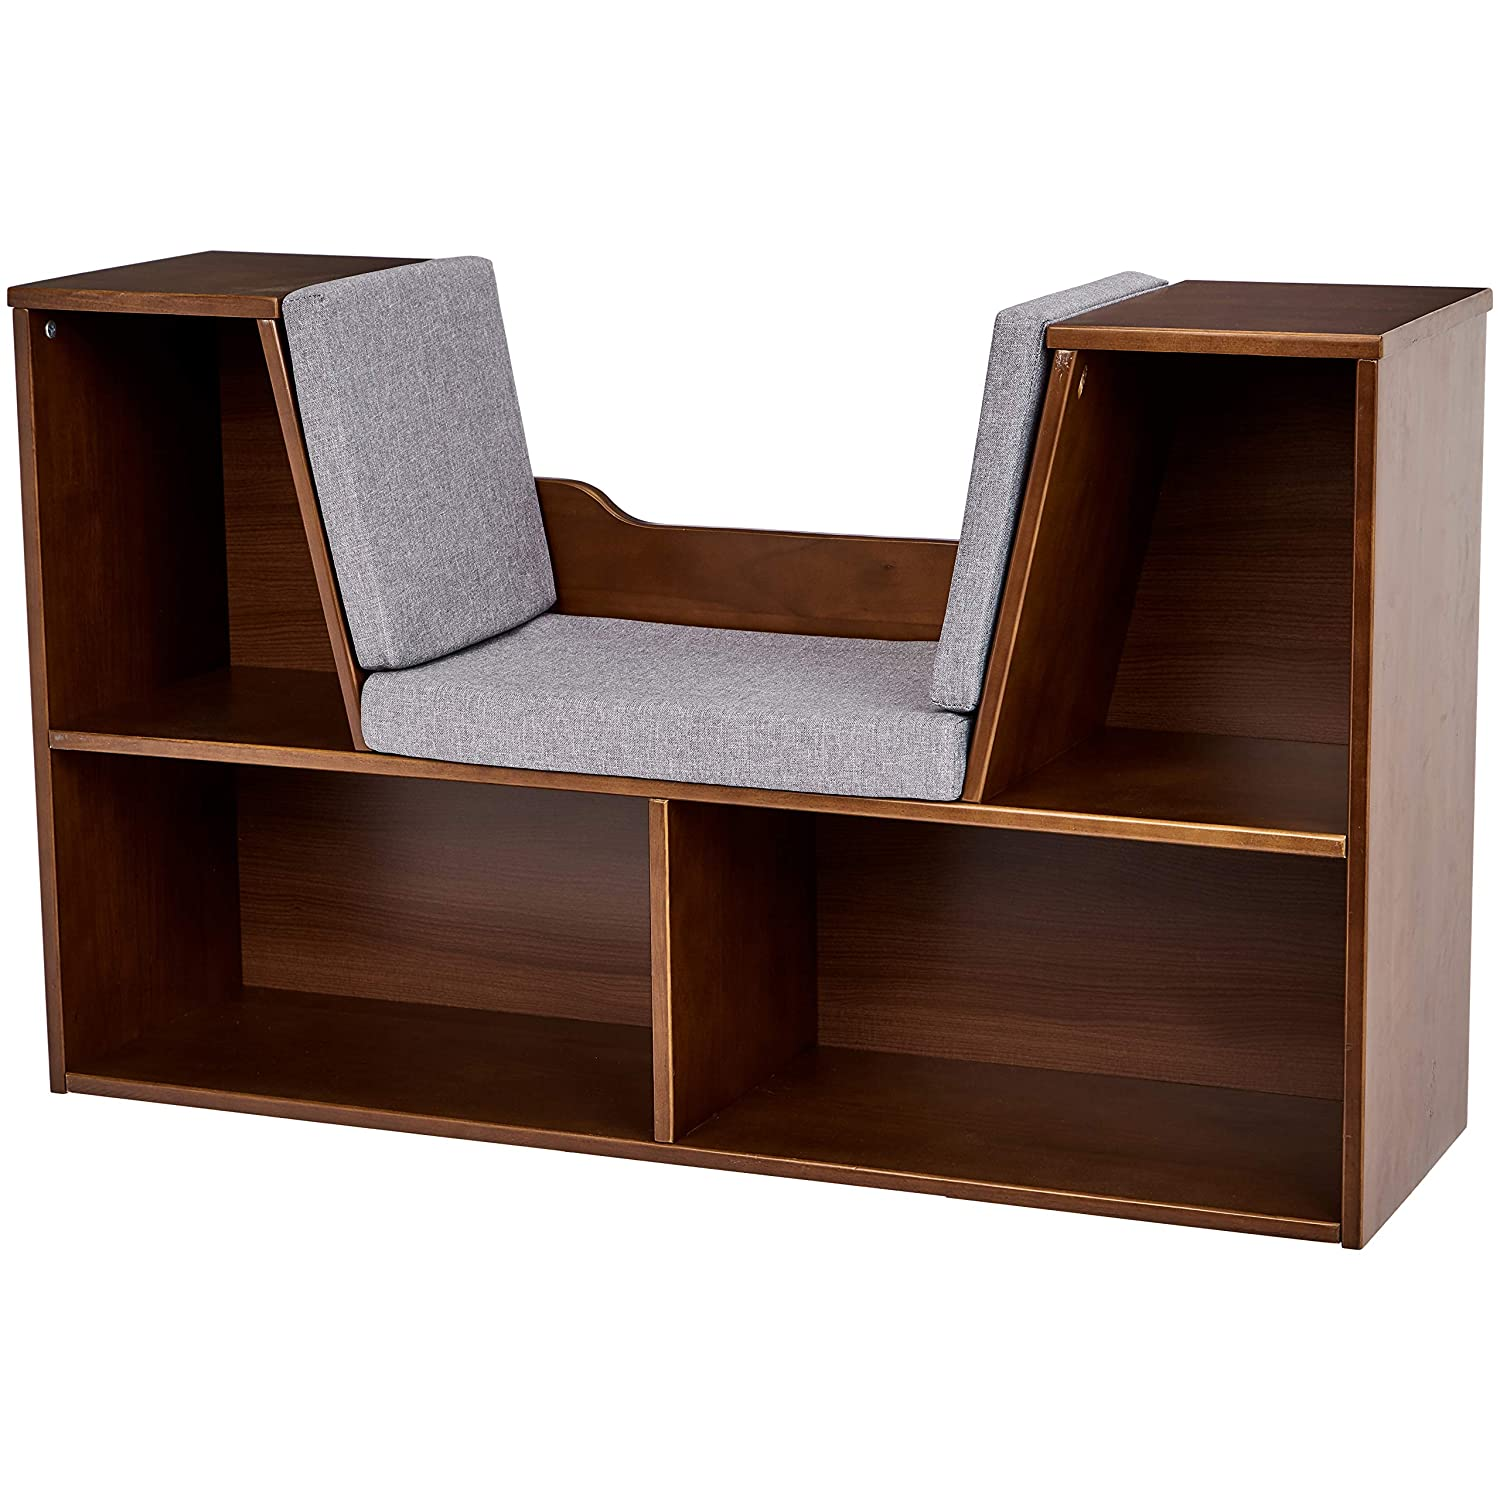 Inventory cleanup selling sale Amazon Basics Popular products Kids Bookcase with Storage Shelve and Reading Nook